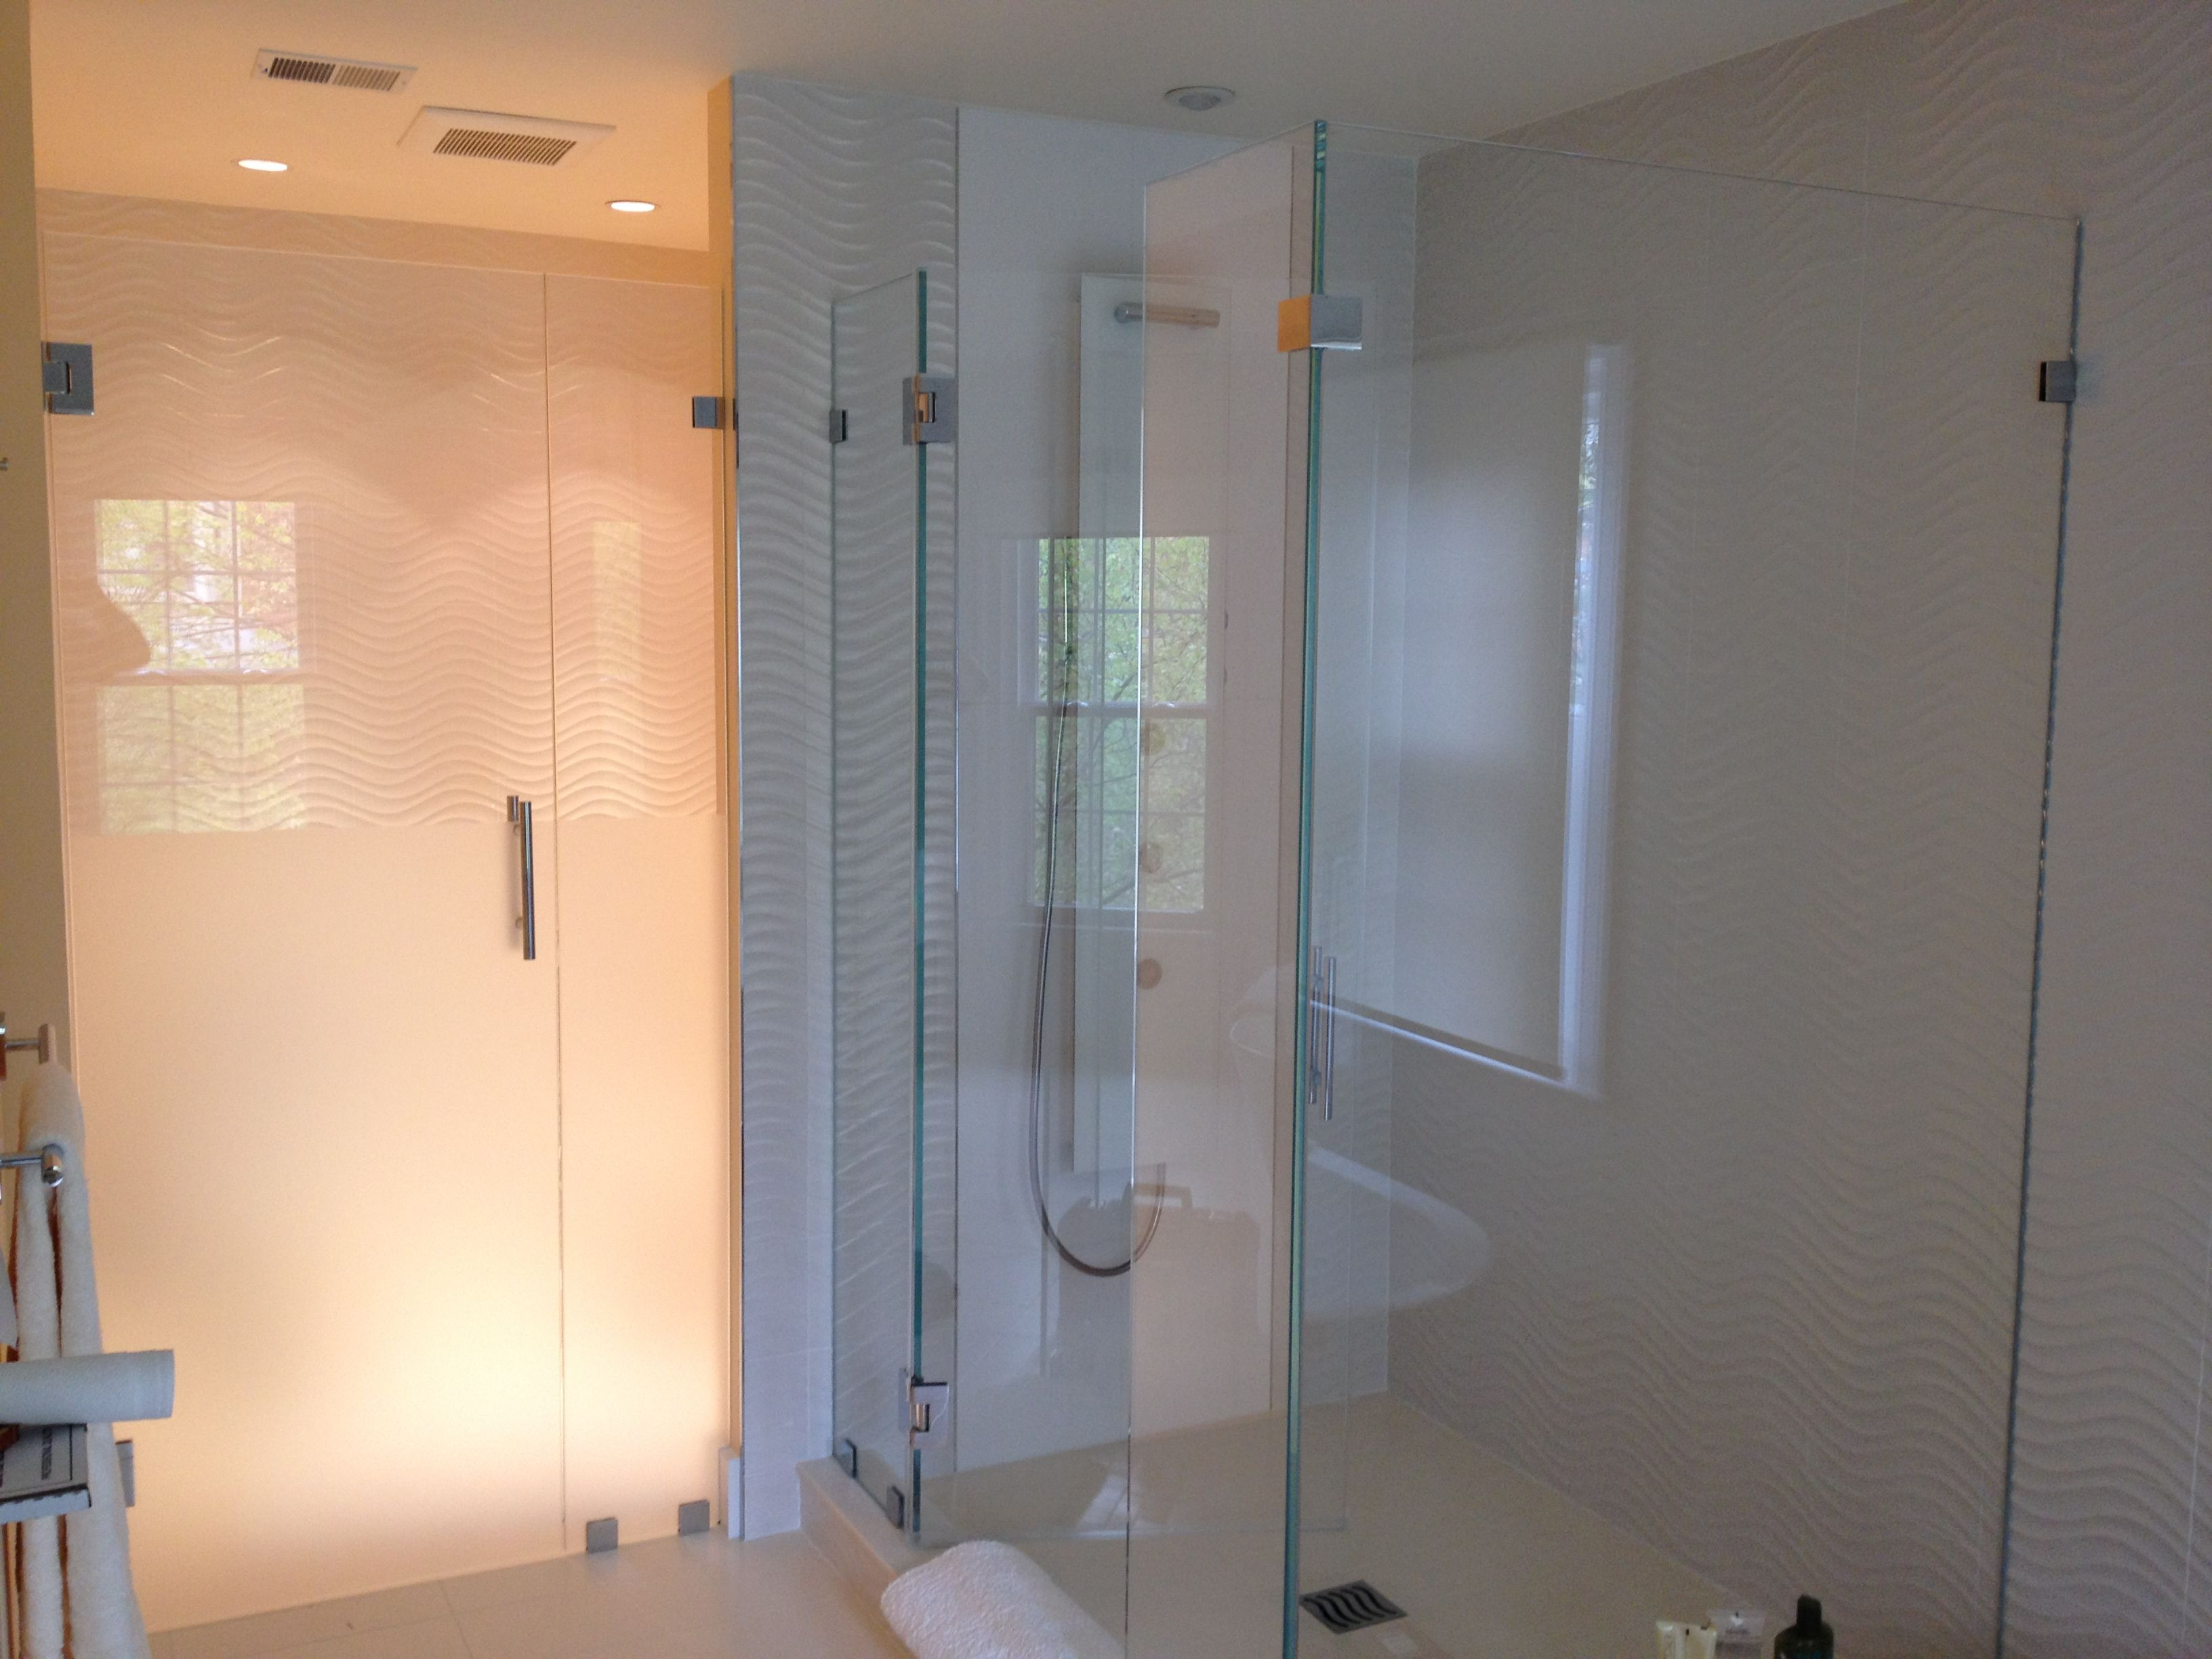 A Glass Box Shower Should Be Part Of Your Next Bathroom Remodel - Bathroom remodeling dc area